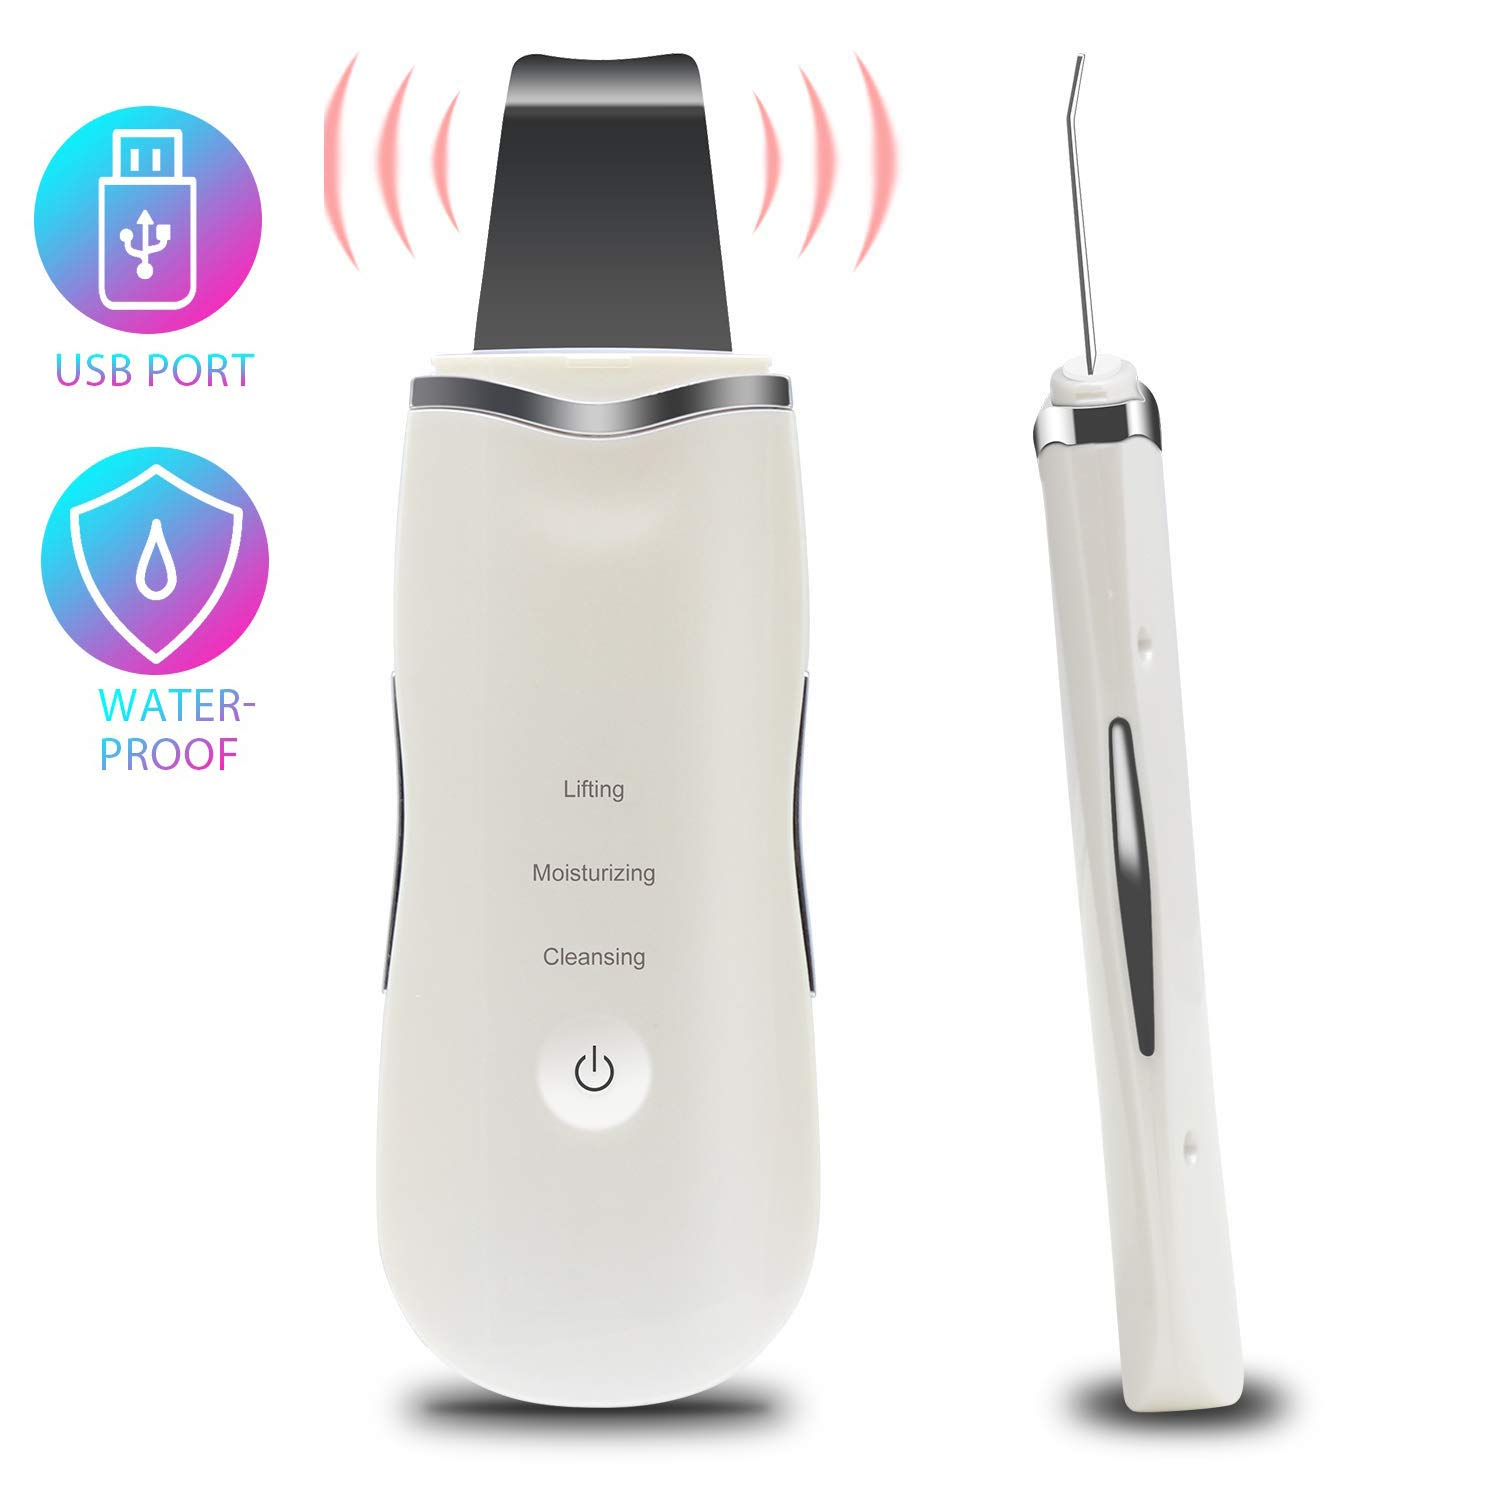 Ultrasonic Skin Scrubber,CREPOW Facial Skin Scrubber,Blackhead Remover and Pore Cleaner with USB Rechargeable and IP6X Waterproof,Suitable for Pore Deep Cleansing and Facial Lifting Tool,White